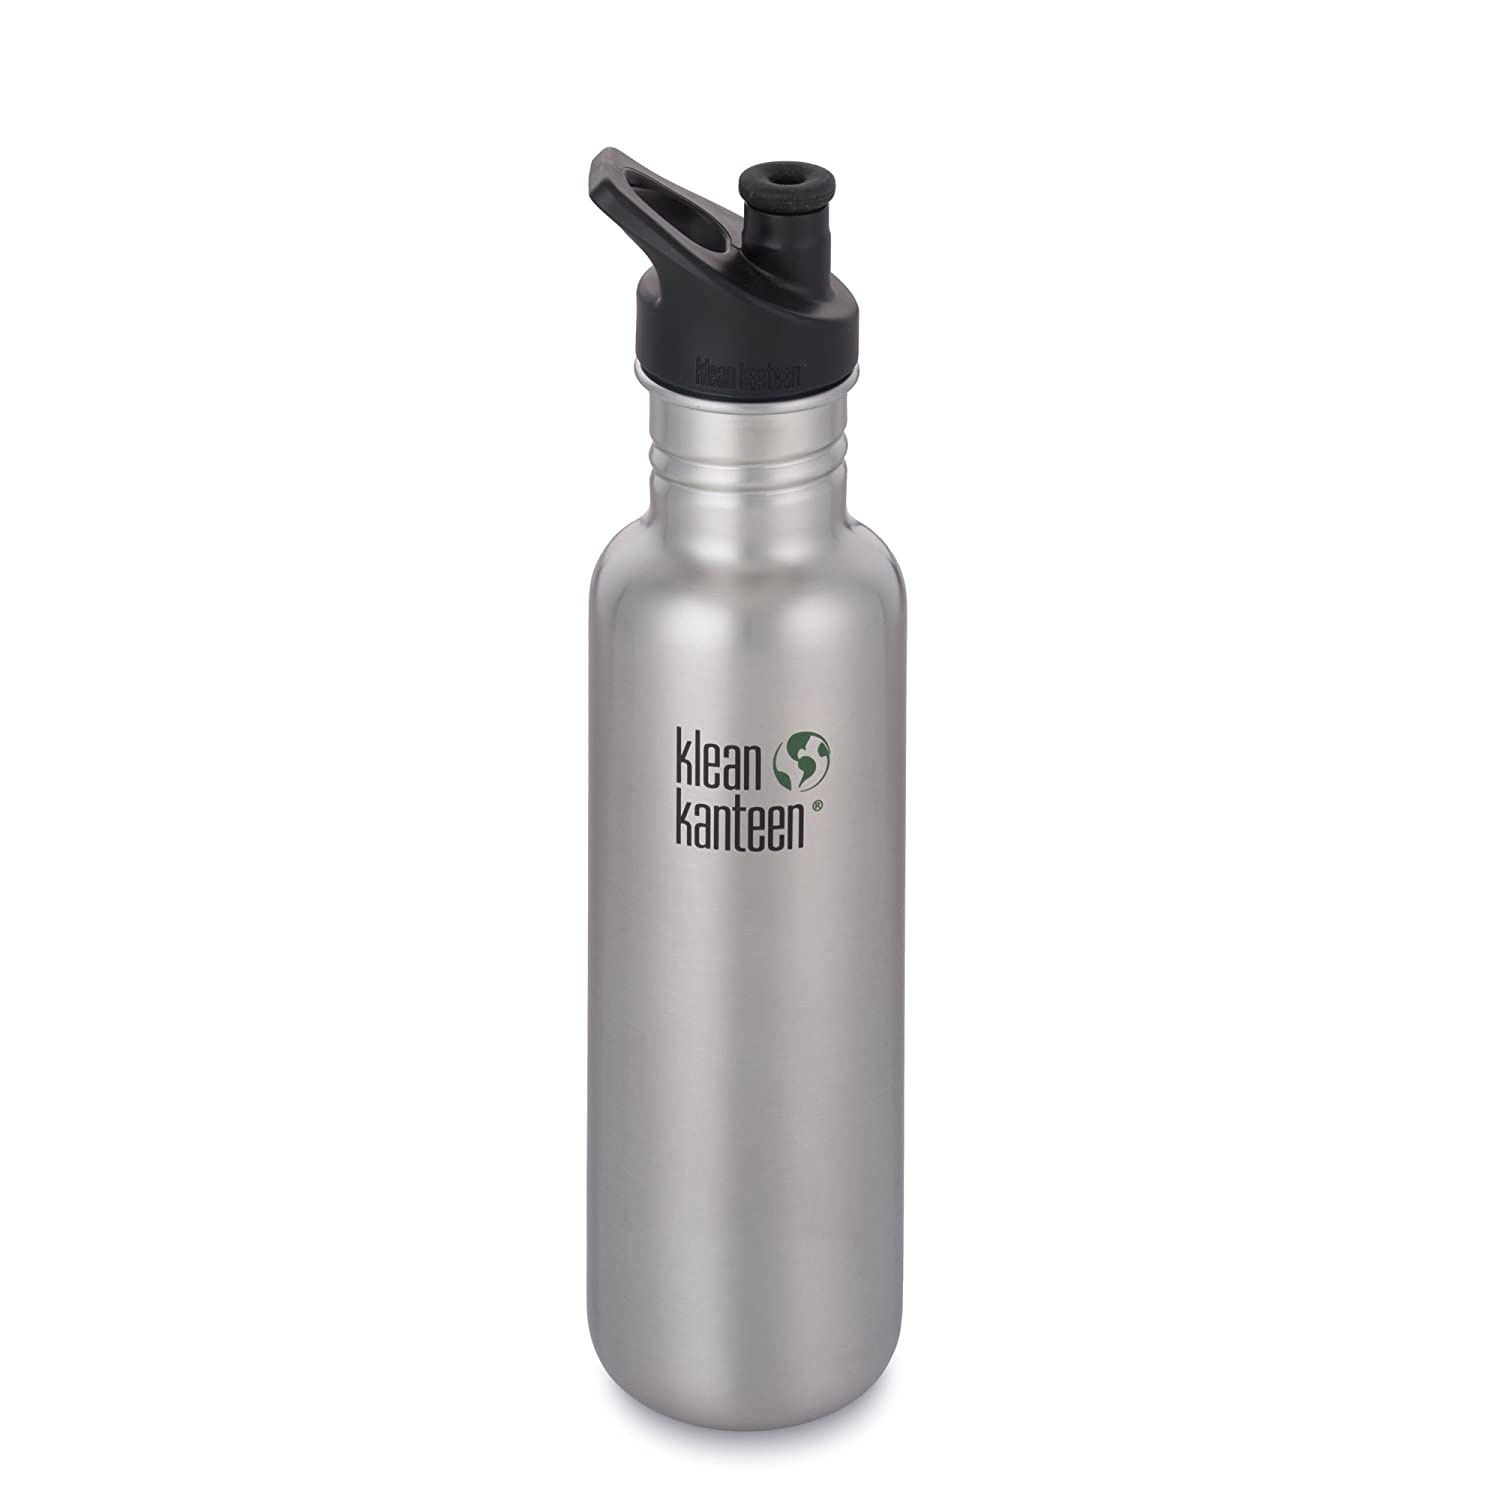 Top 10 Best Stainless Steel Water Bottle Reviews in 2020 6